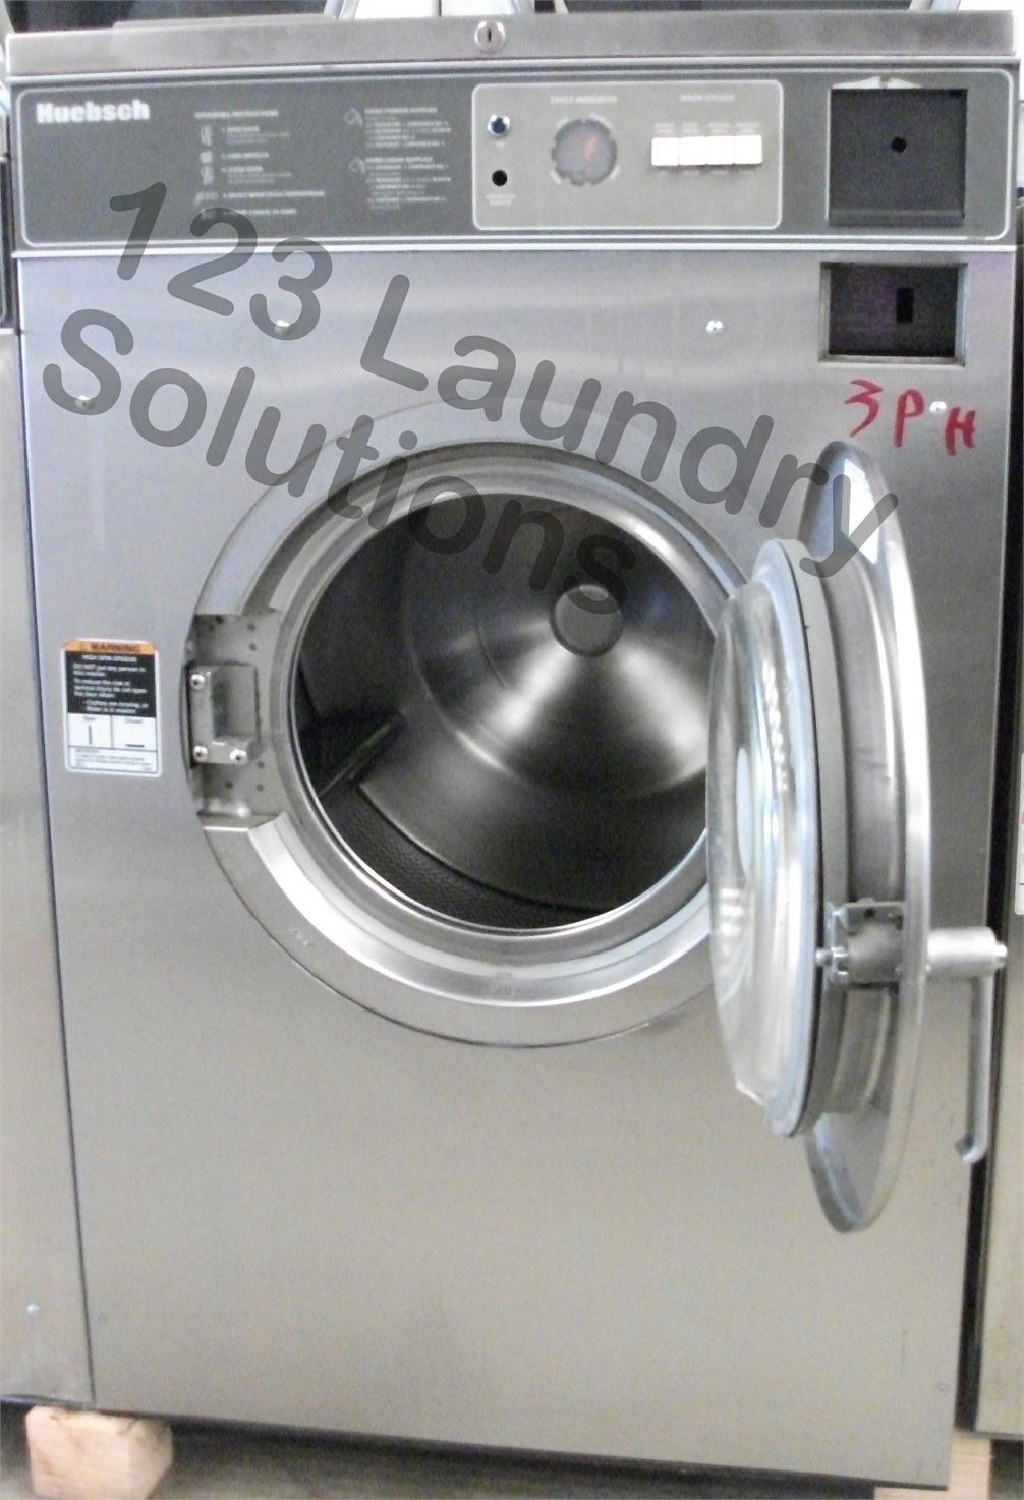 Coin Laundry Huebsch Front Load Washer 208-240v Stainless Steel HC35MD2OU2 0001 Used